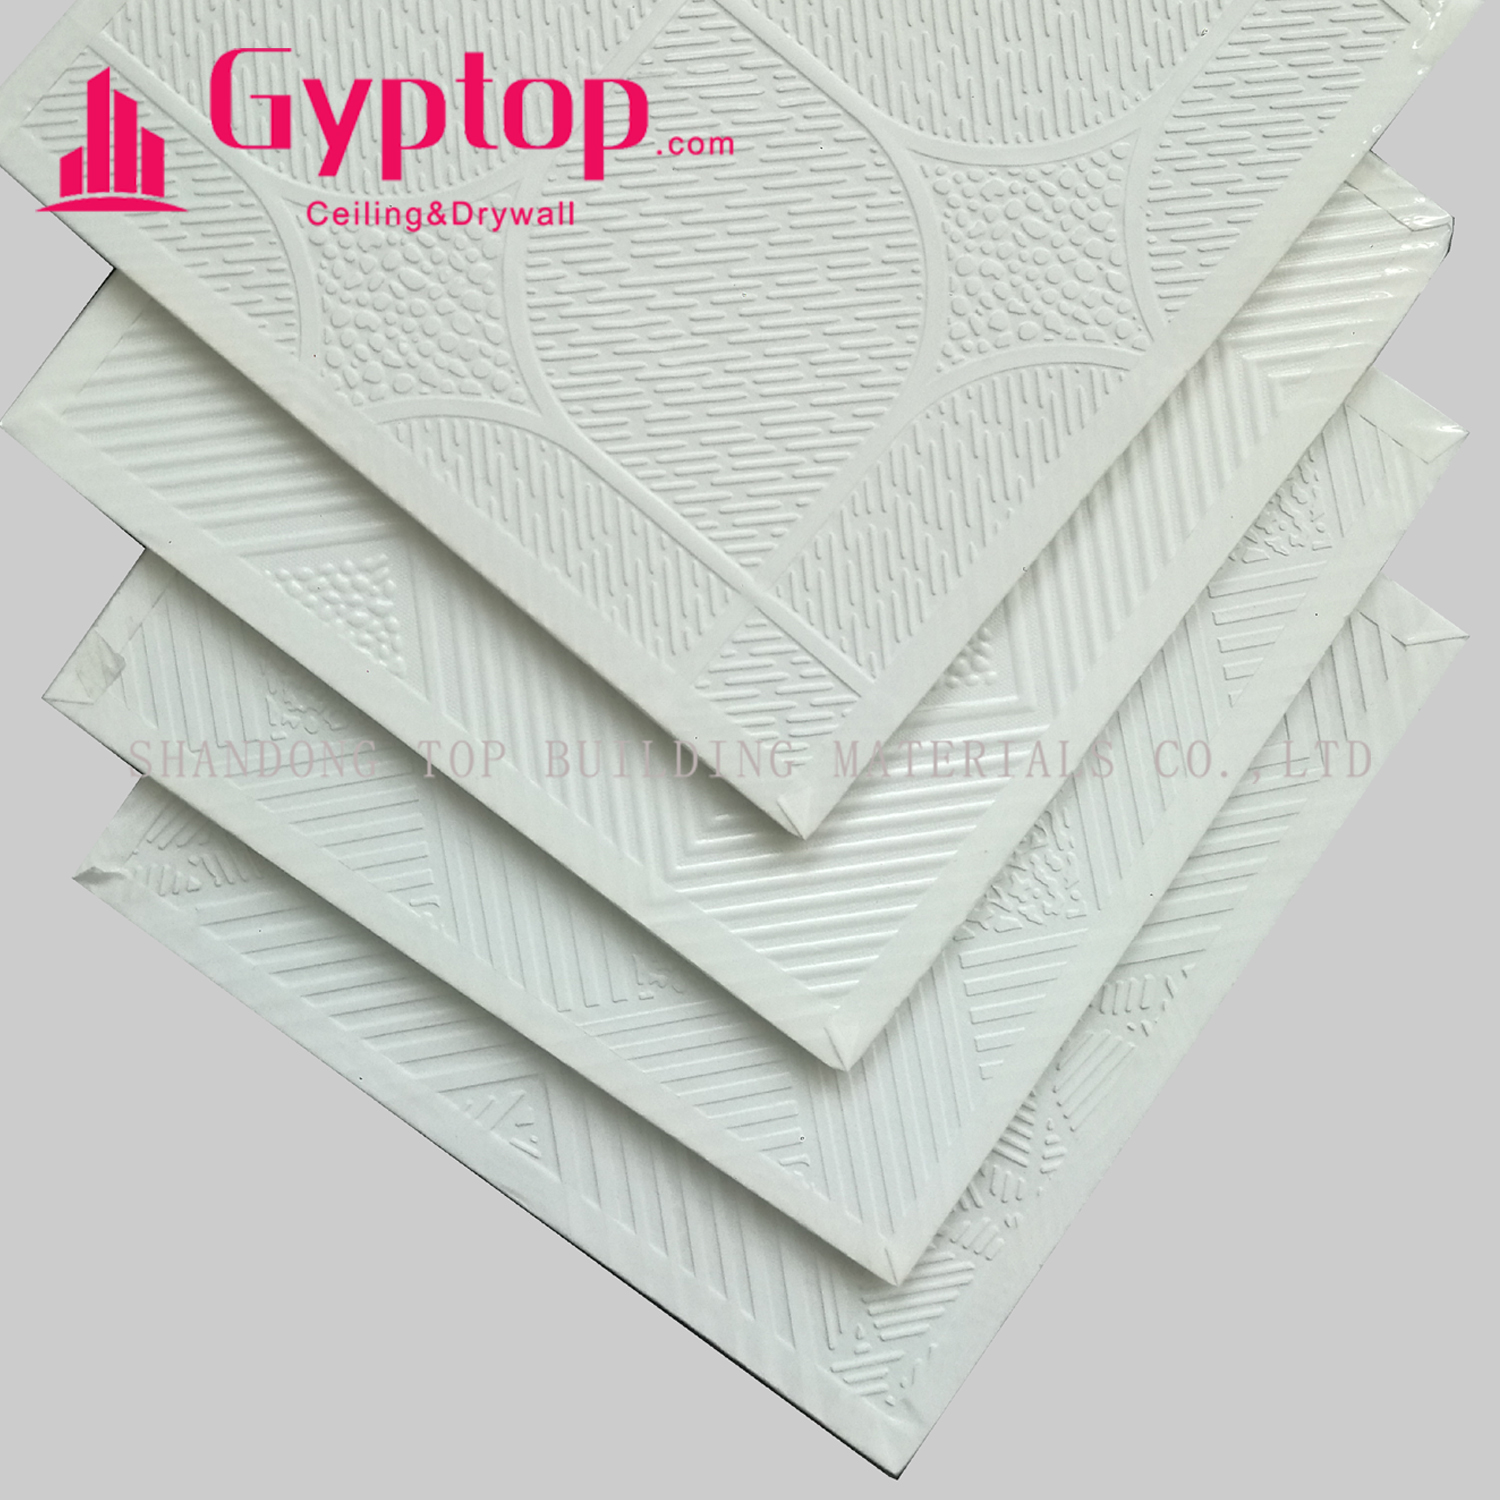 Regular standard gypsum board,drywall